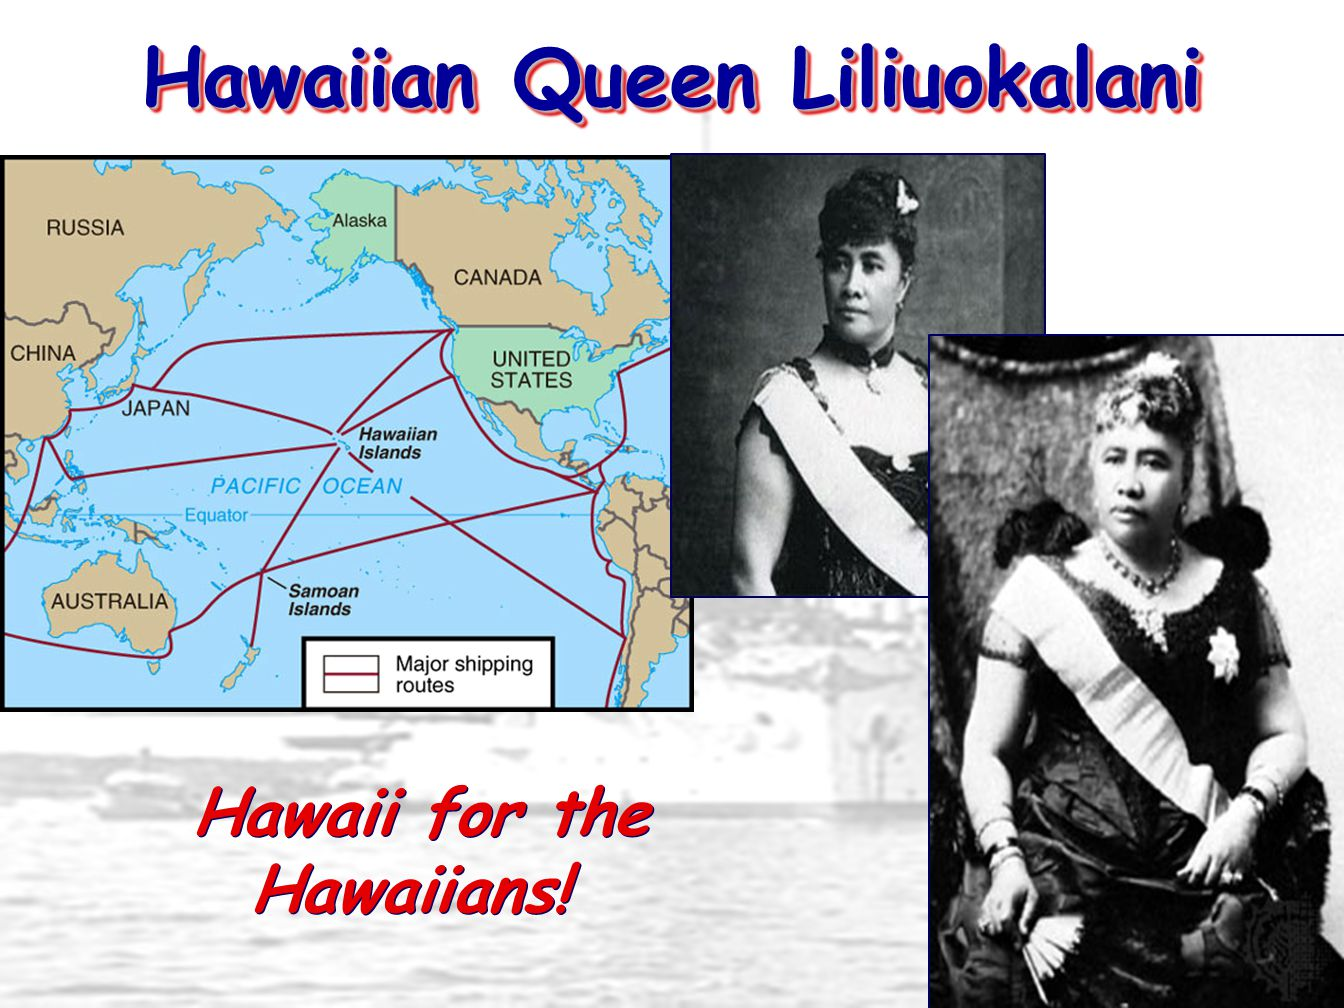 Hawaiian Queen Liliuokalani Hawaii for the Hawaiians!